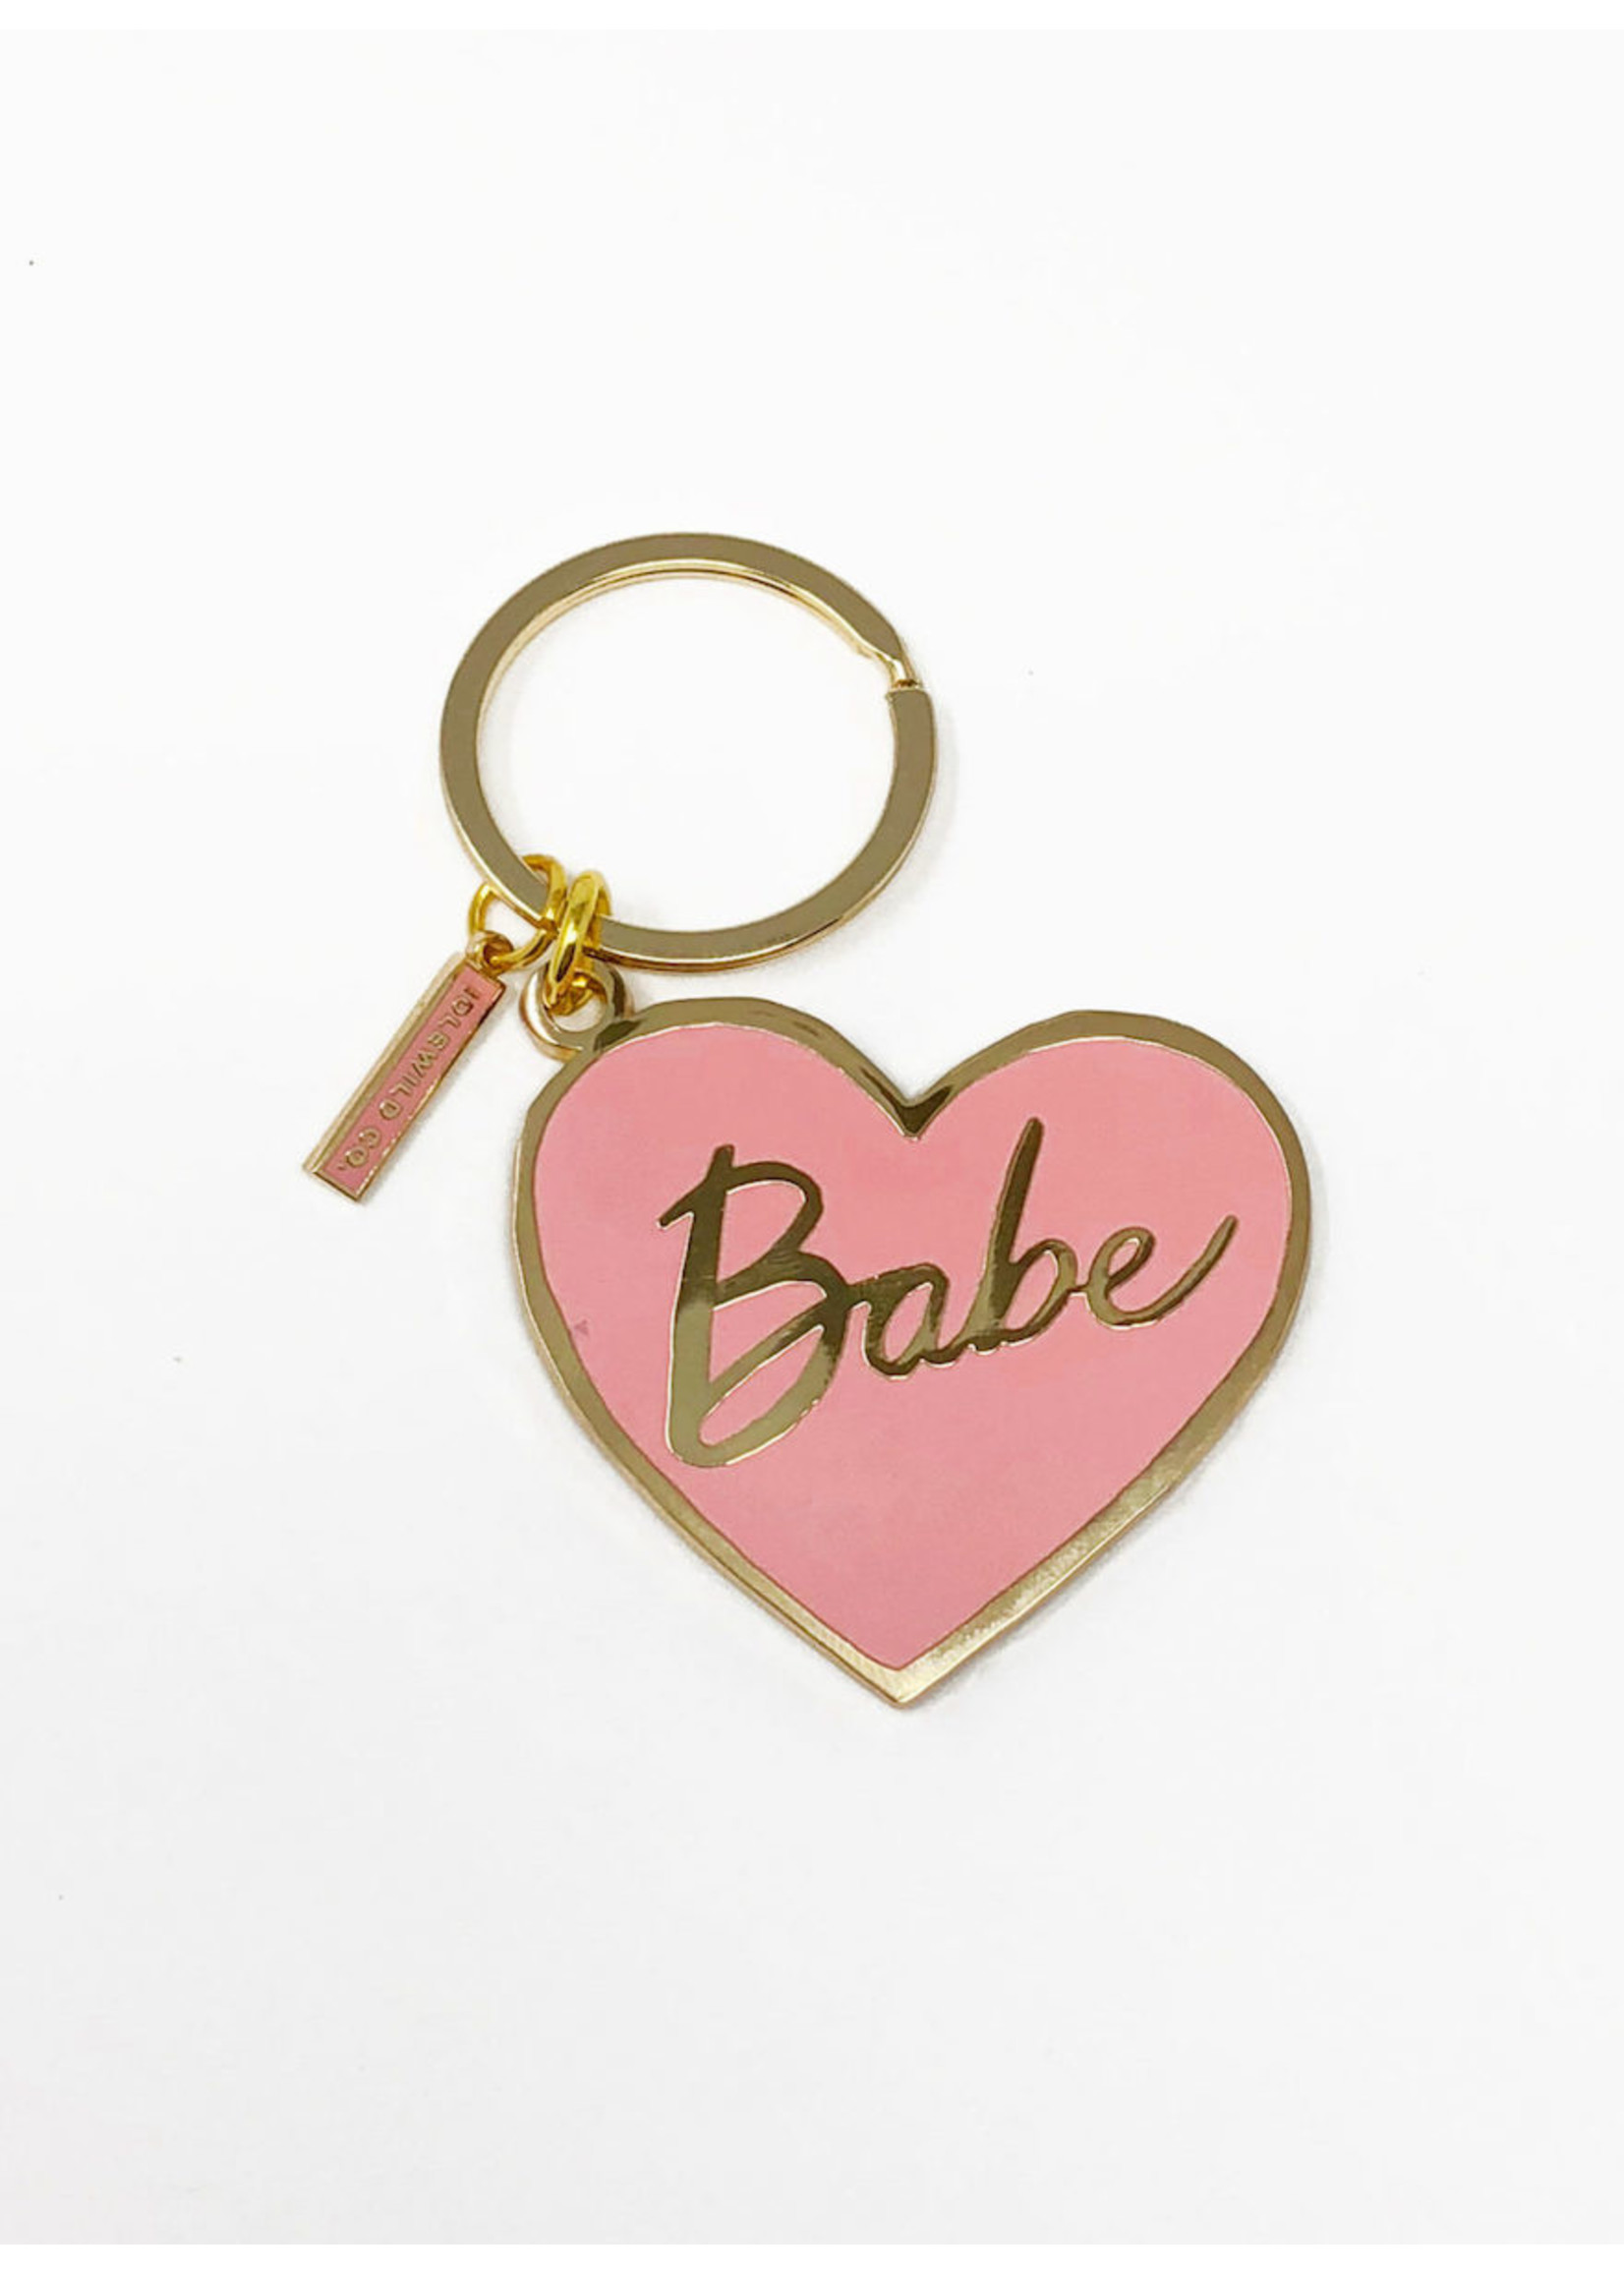 Idlewild Co. Idlewild Co. Babe Keychain